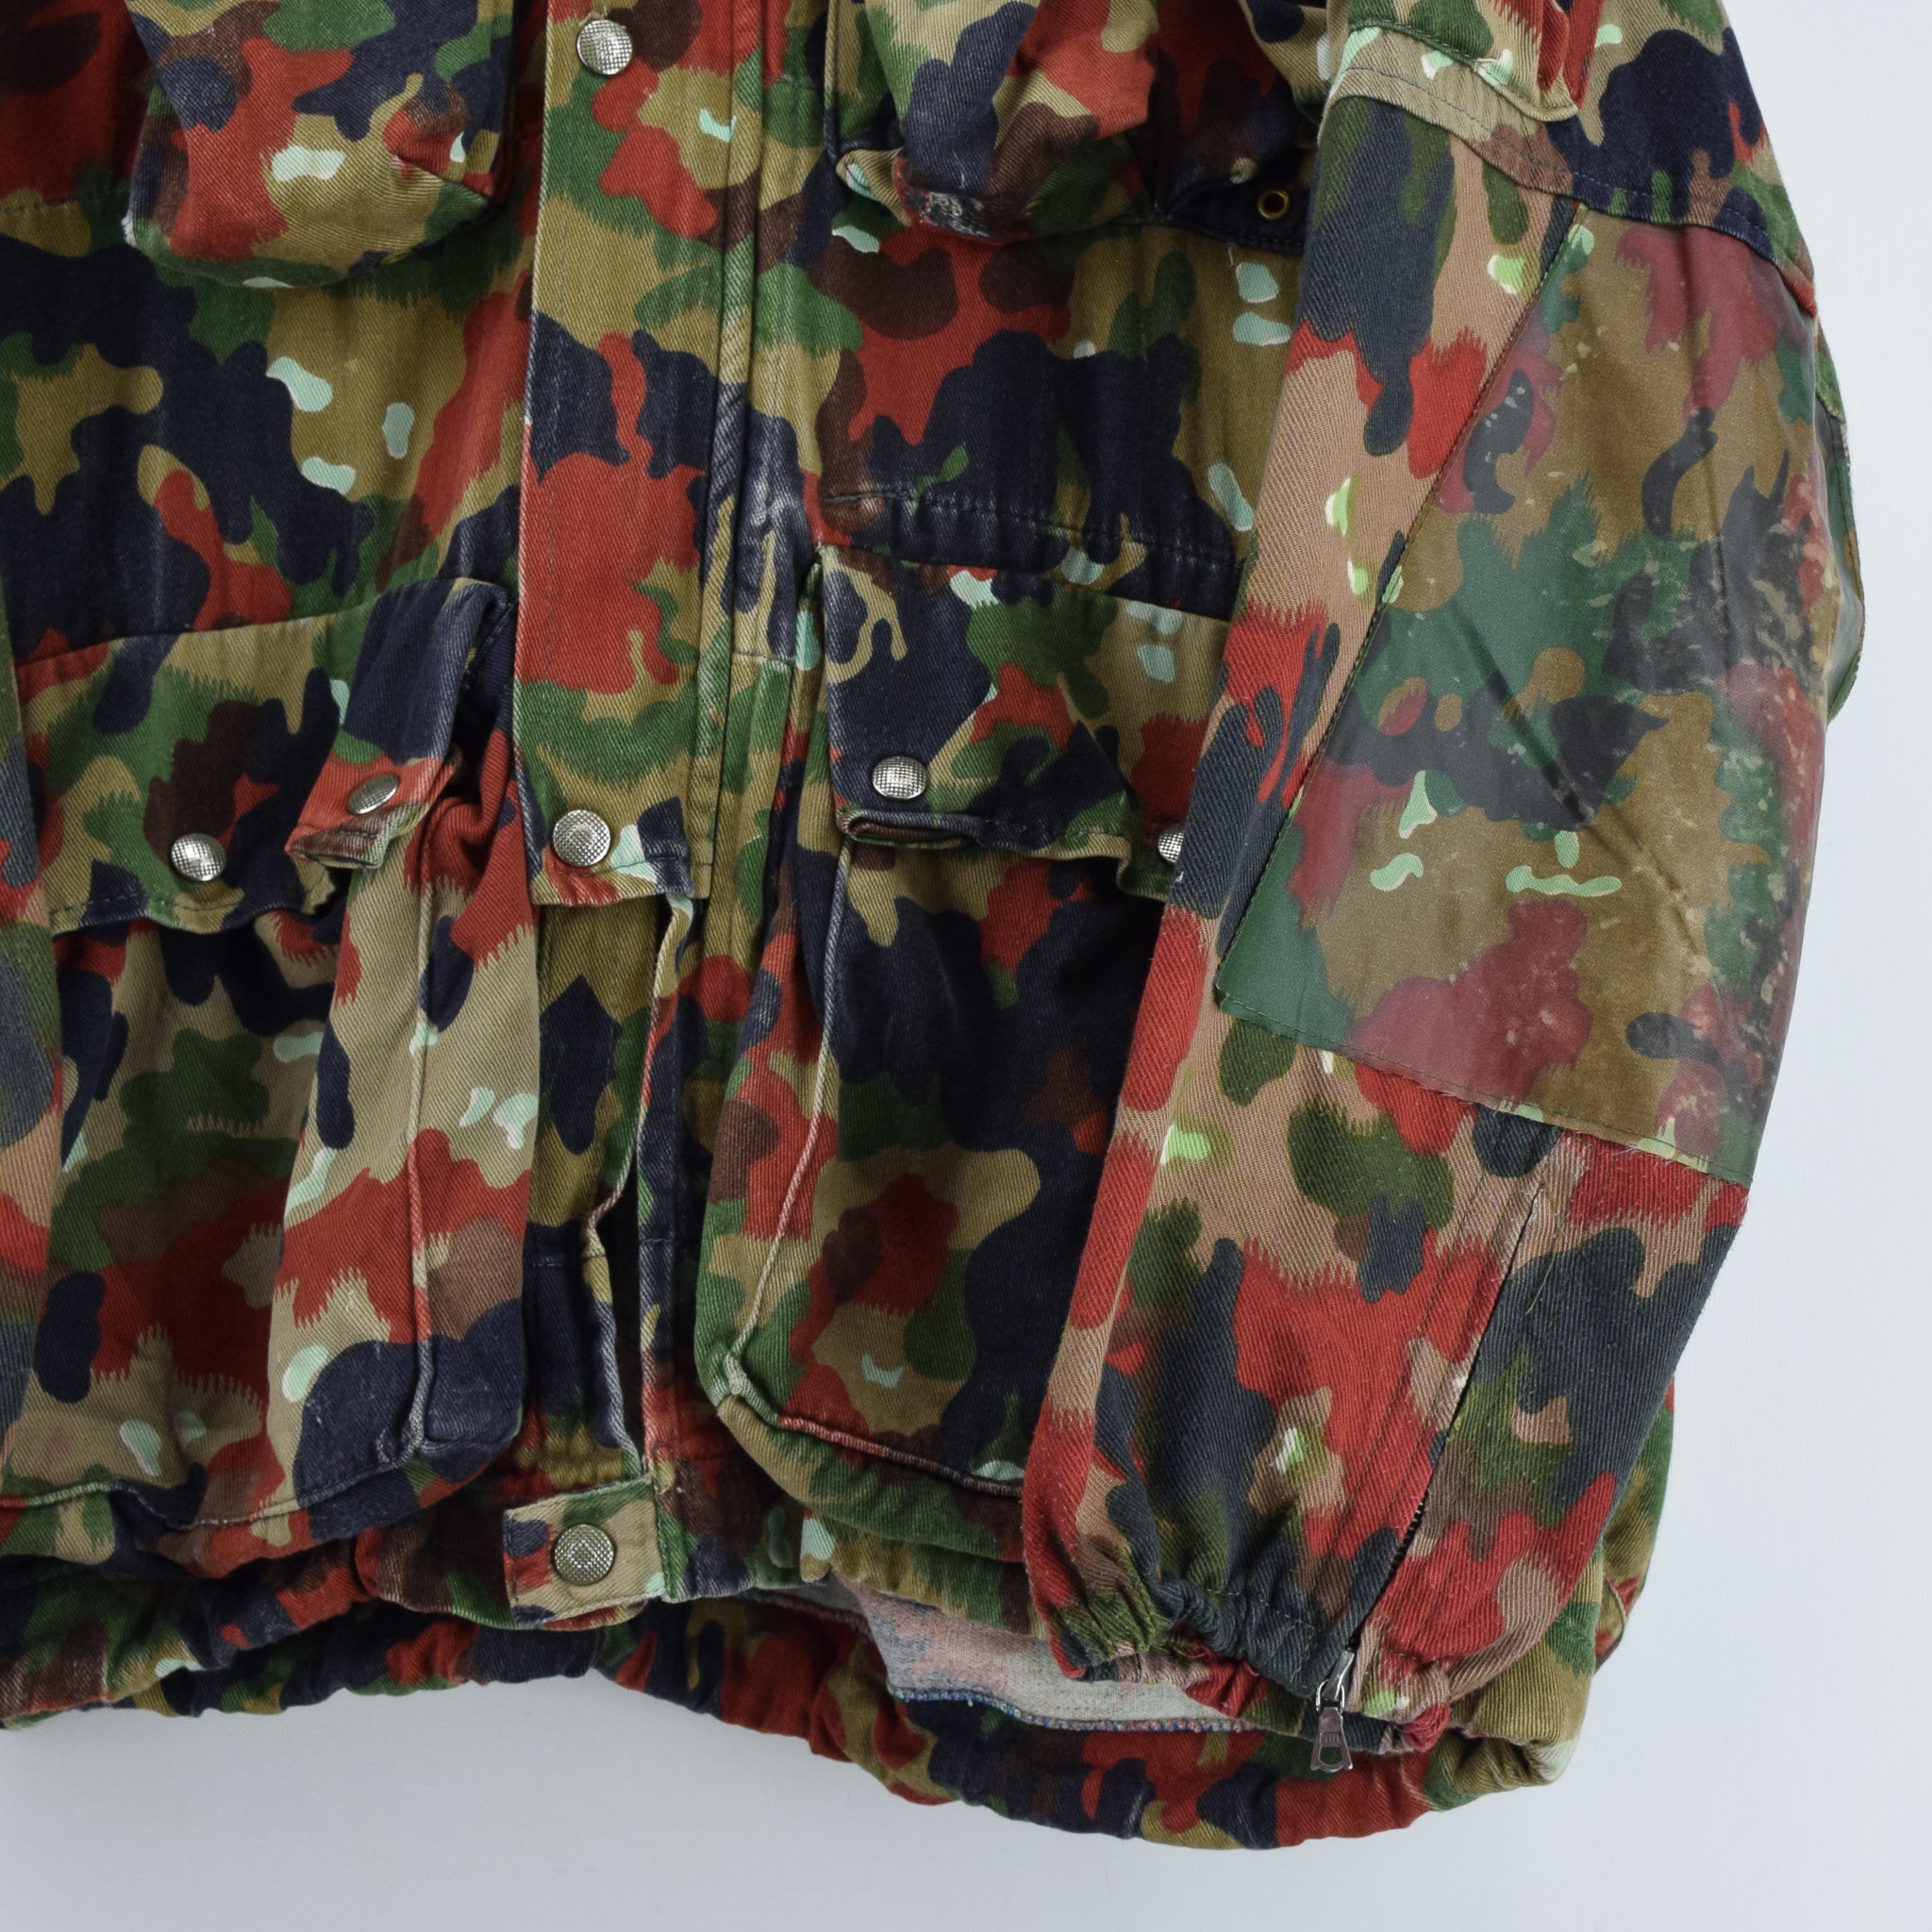 affcf57fa0dbe ... Vintage 80s Swiss Army Alpenflage Camo Sniper Combat Field Jacket XL  front hem ...